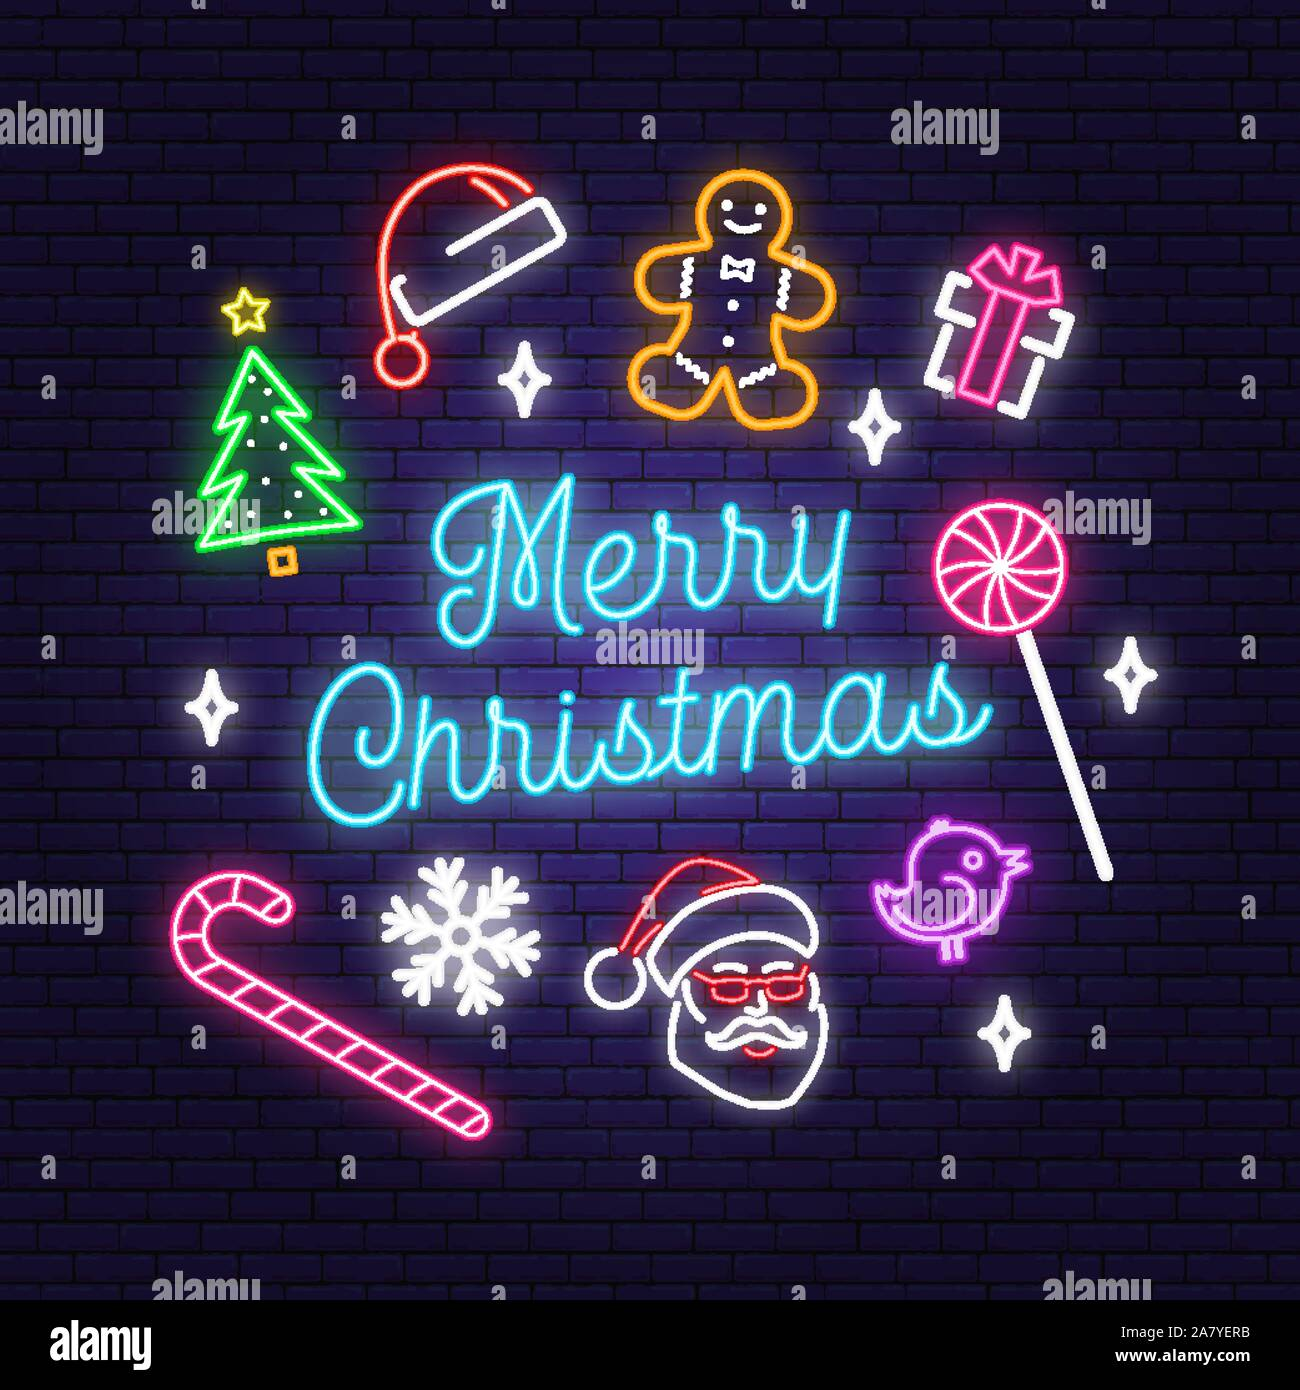 Merry Christmas 2020 Logo Merry Christmas and 2020 Happy New Year neon sign with christmas